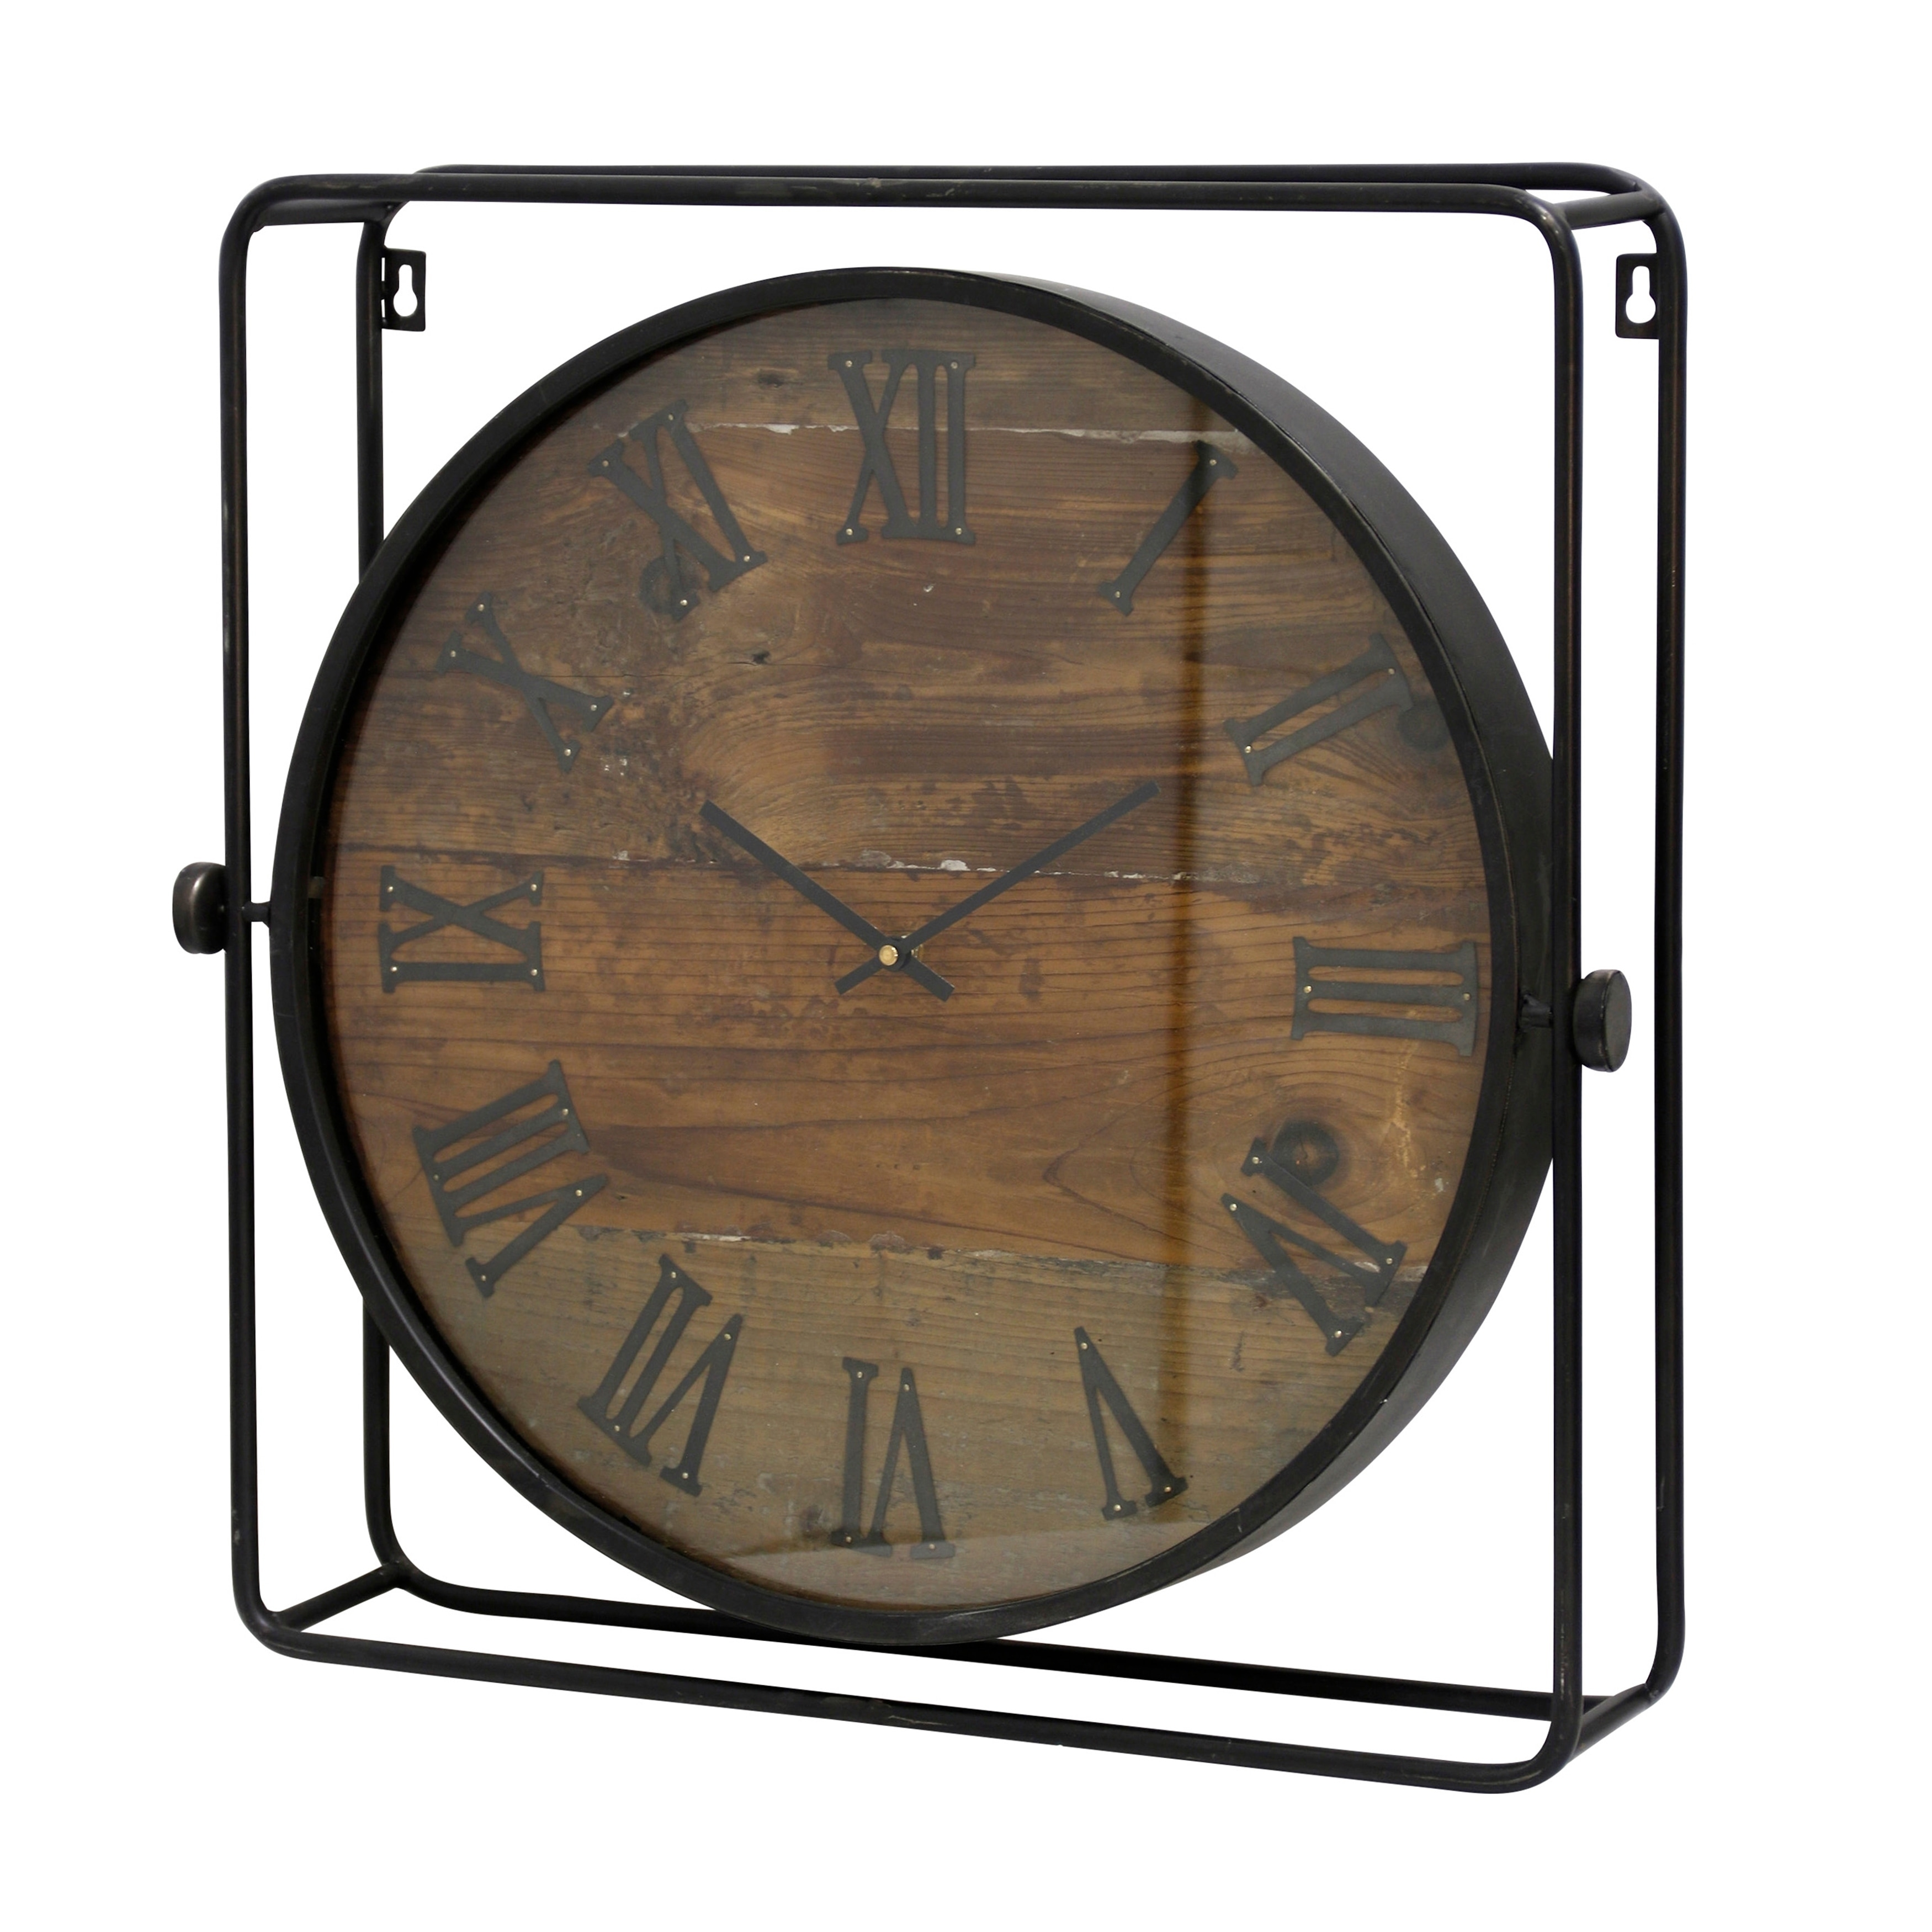 Round Wall Clock with Roman Numerals on Weathered Wood Face